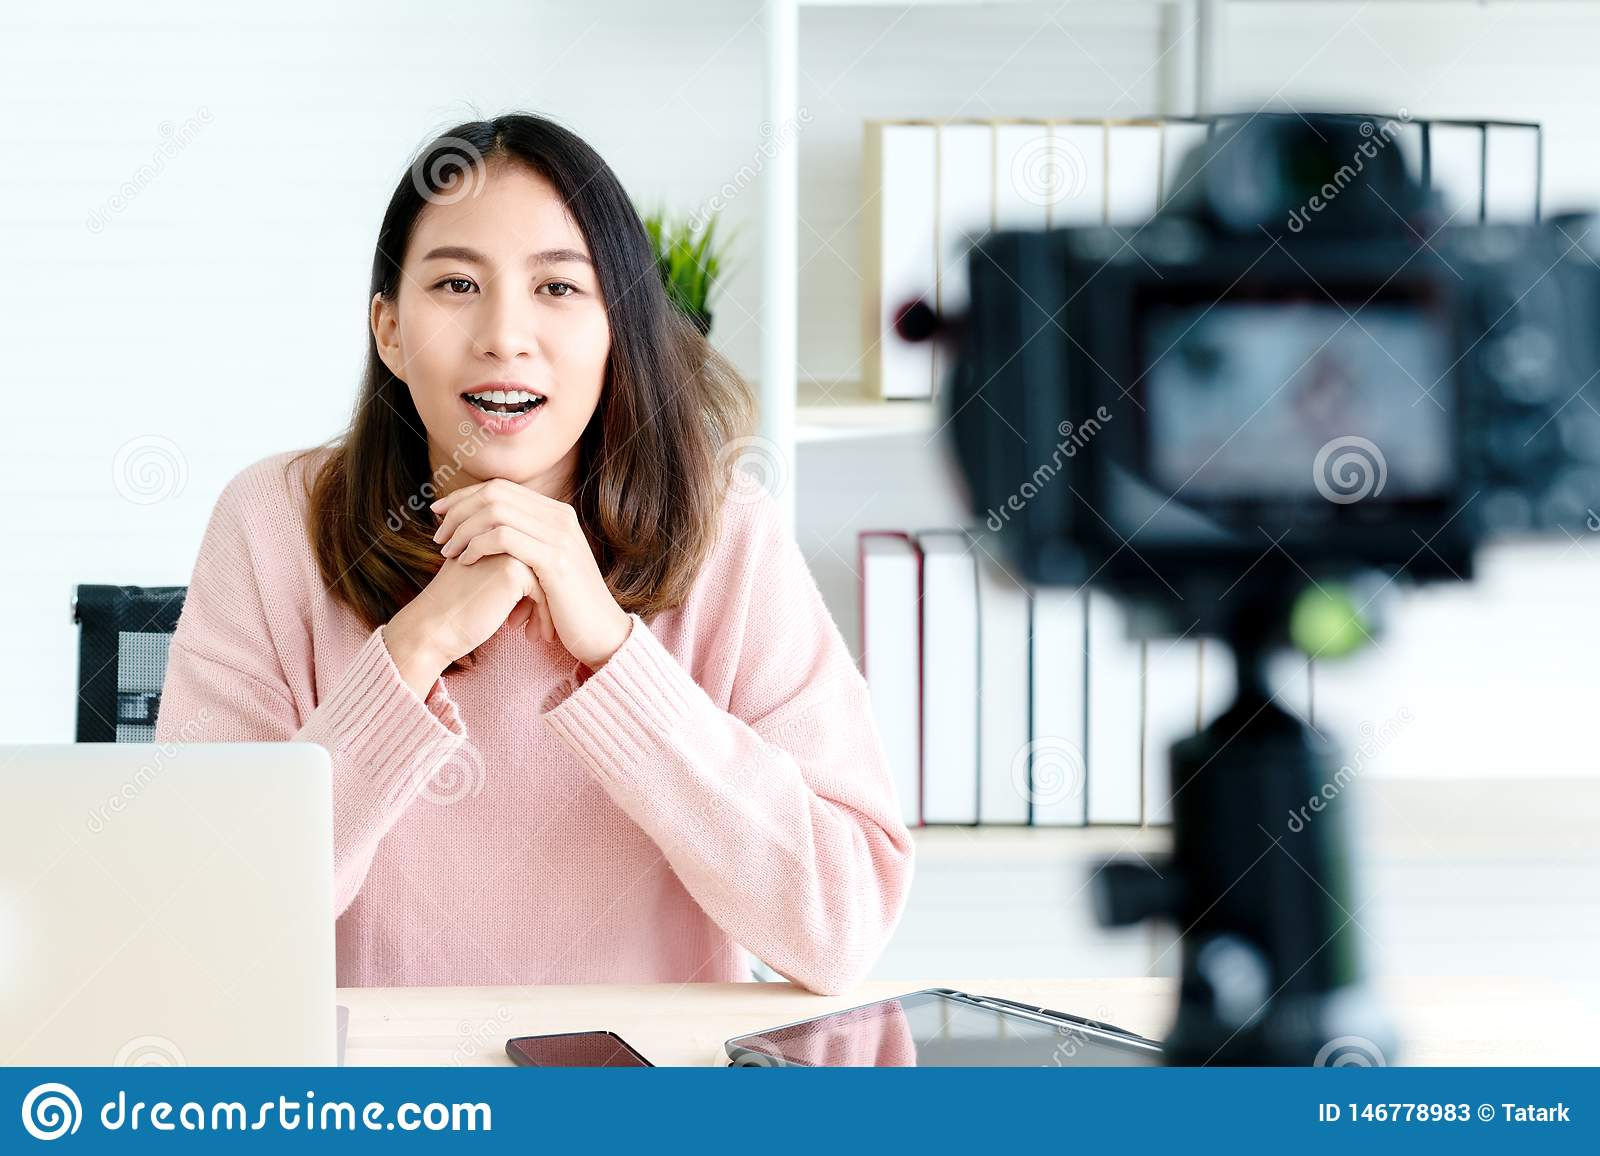 Young attractive asian woman blogger or vlogger looking at camera and talking on video shooting with technology. Social media